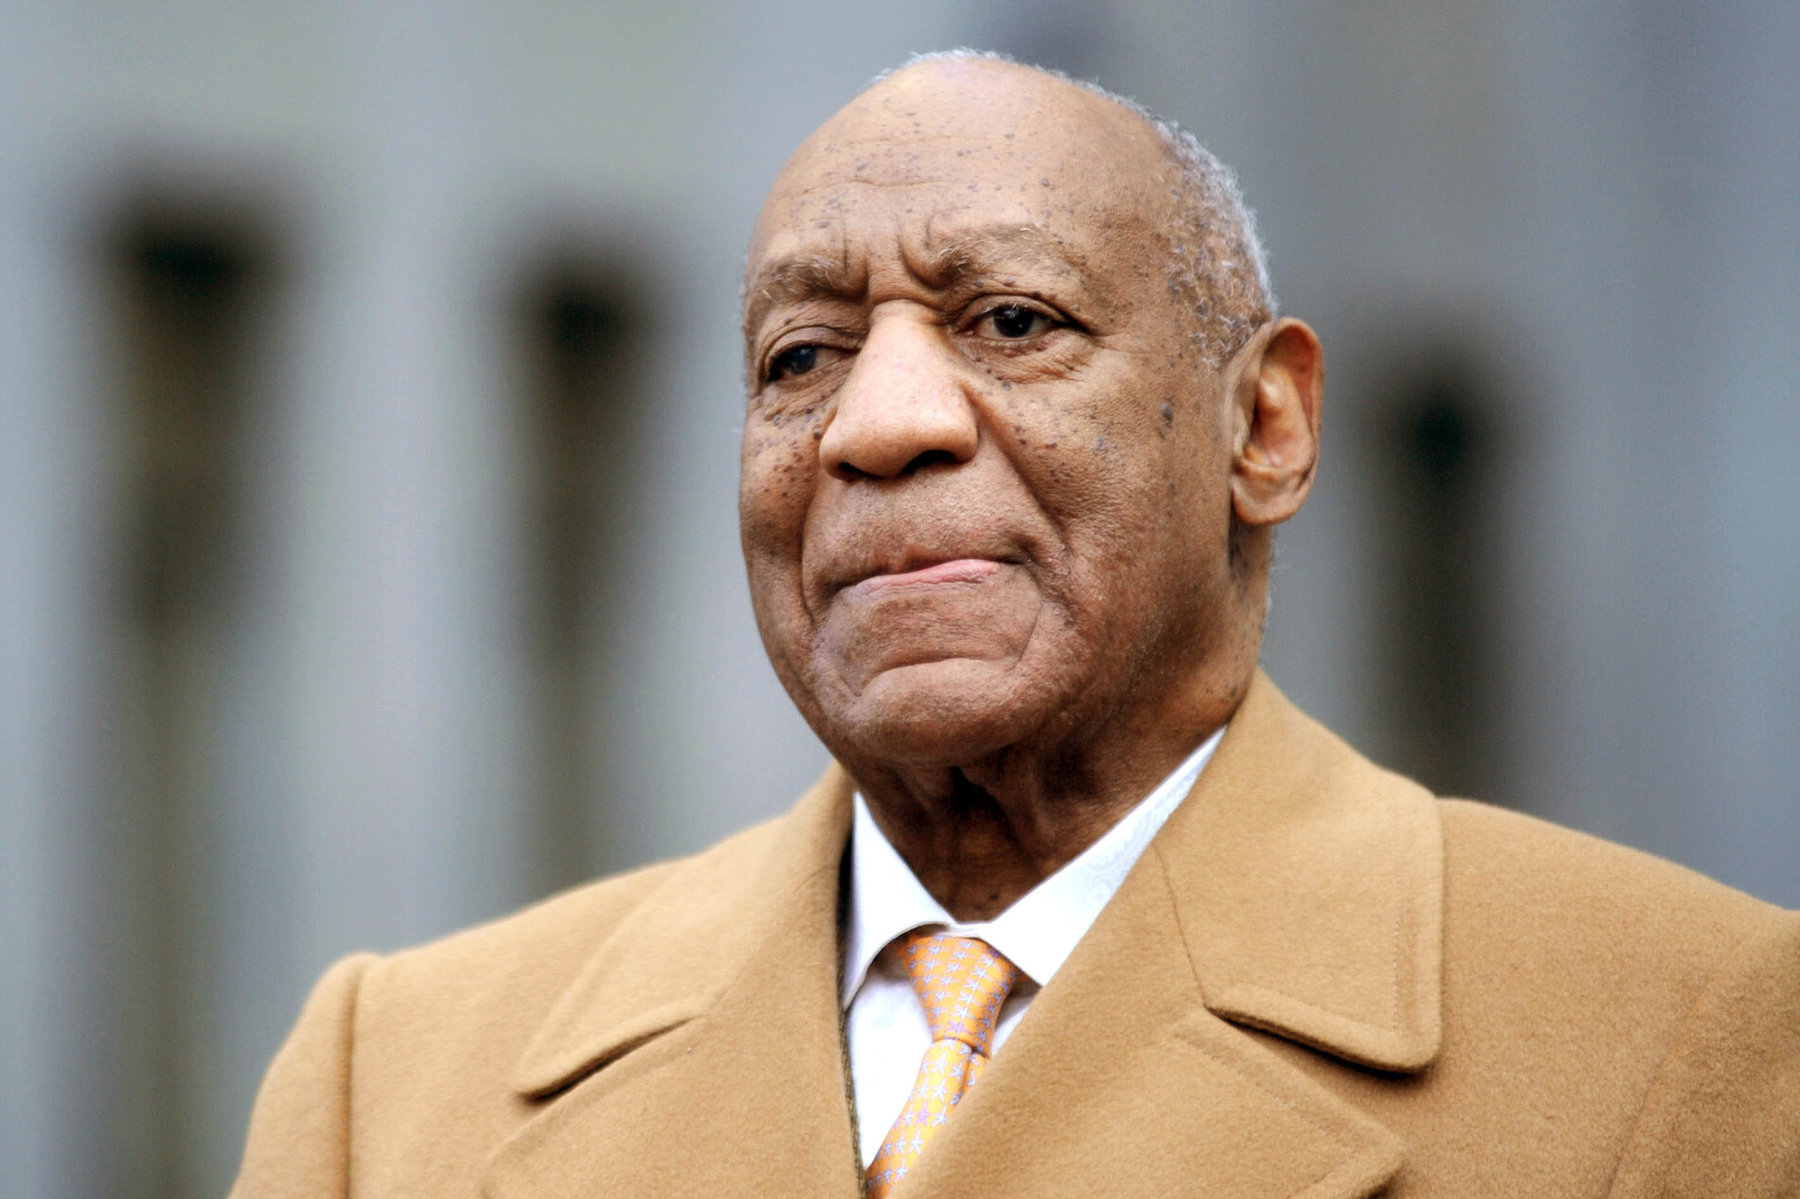 Bill Cosby ask Howard University to defend 'freedom of speech' by Phylicia Rashad